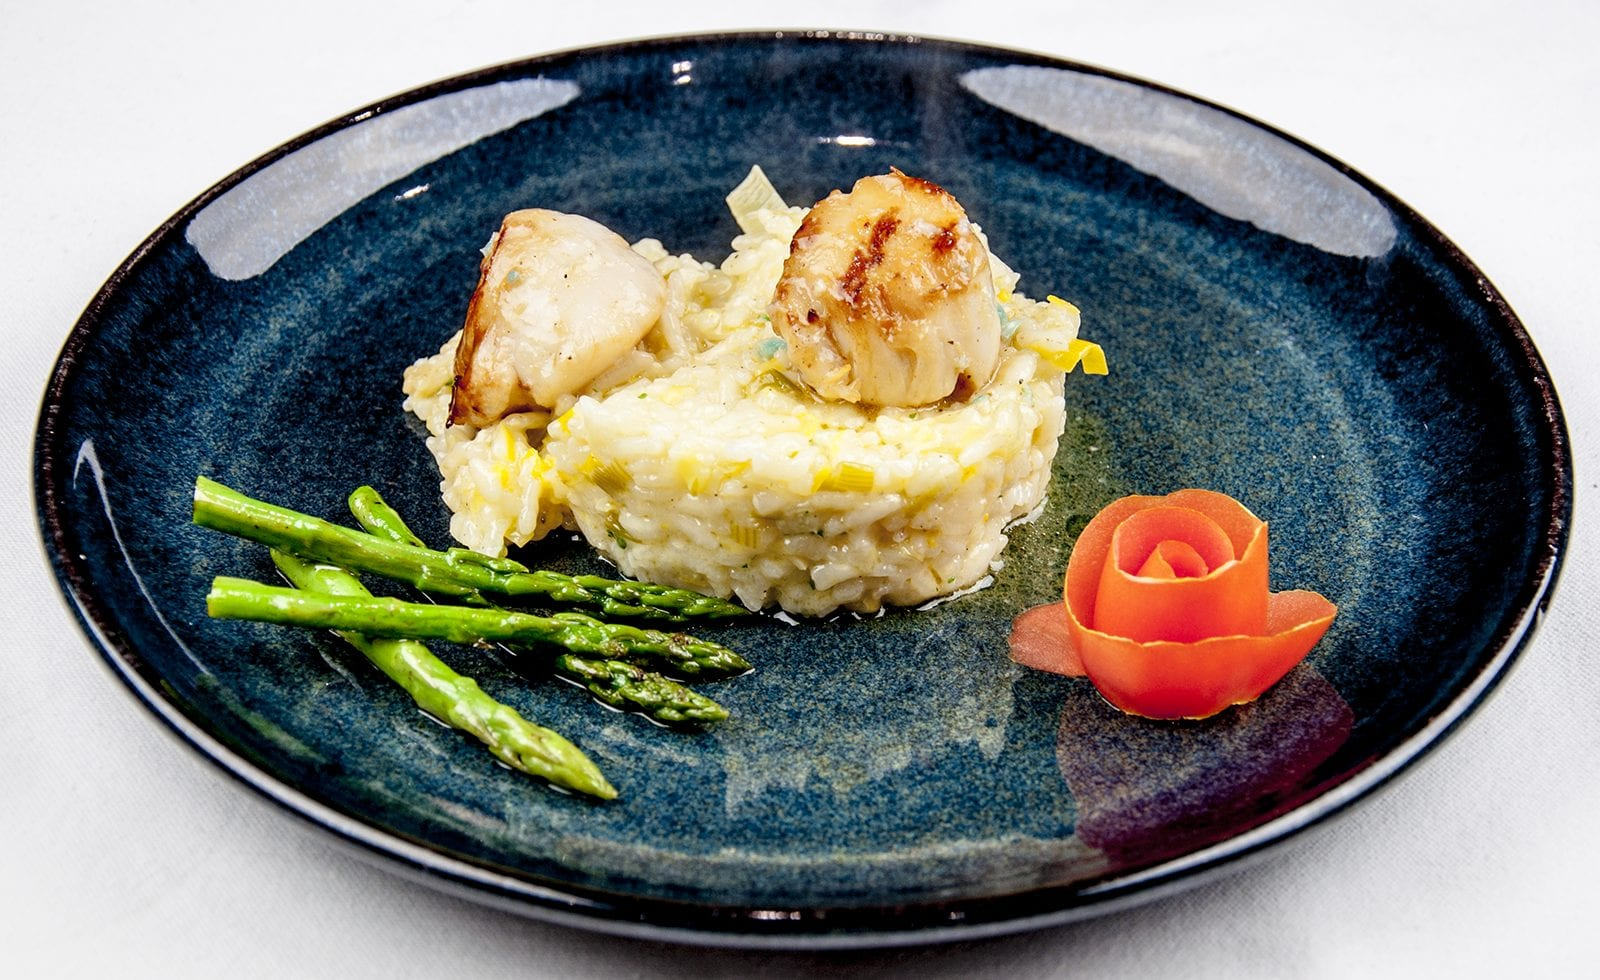 Pan fried scallops on a bed of leek risotto served with asparagus and garnished with a tomato rose | theyumyumclub